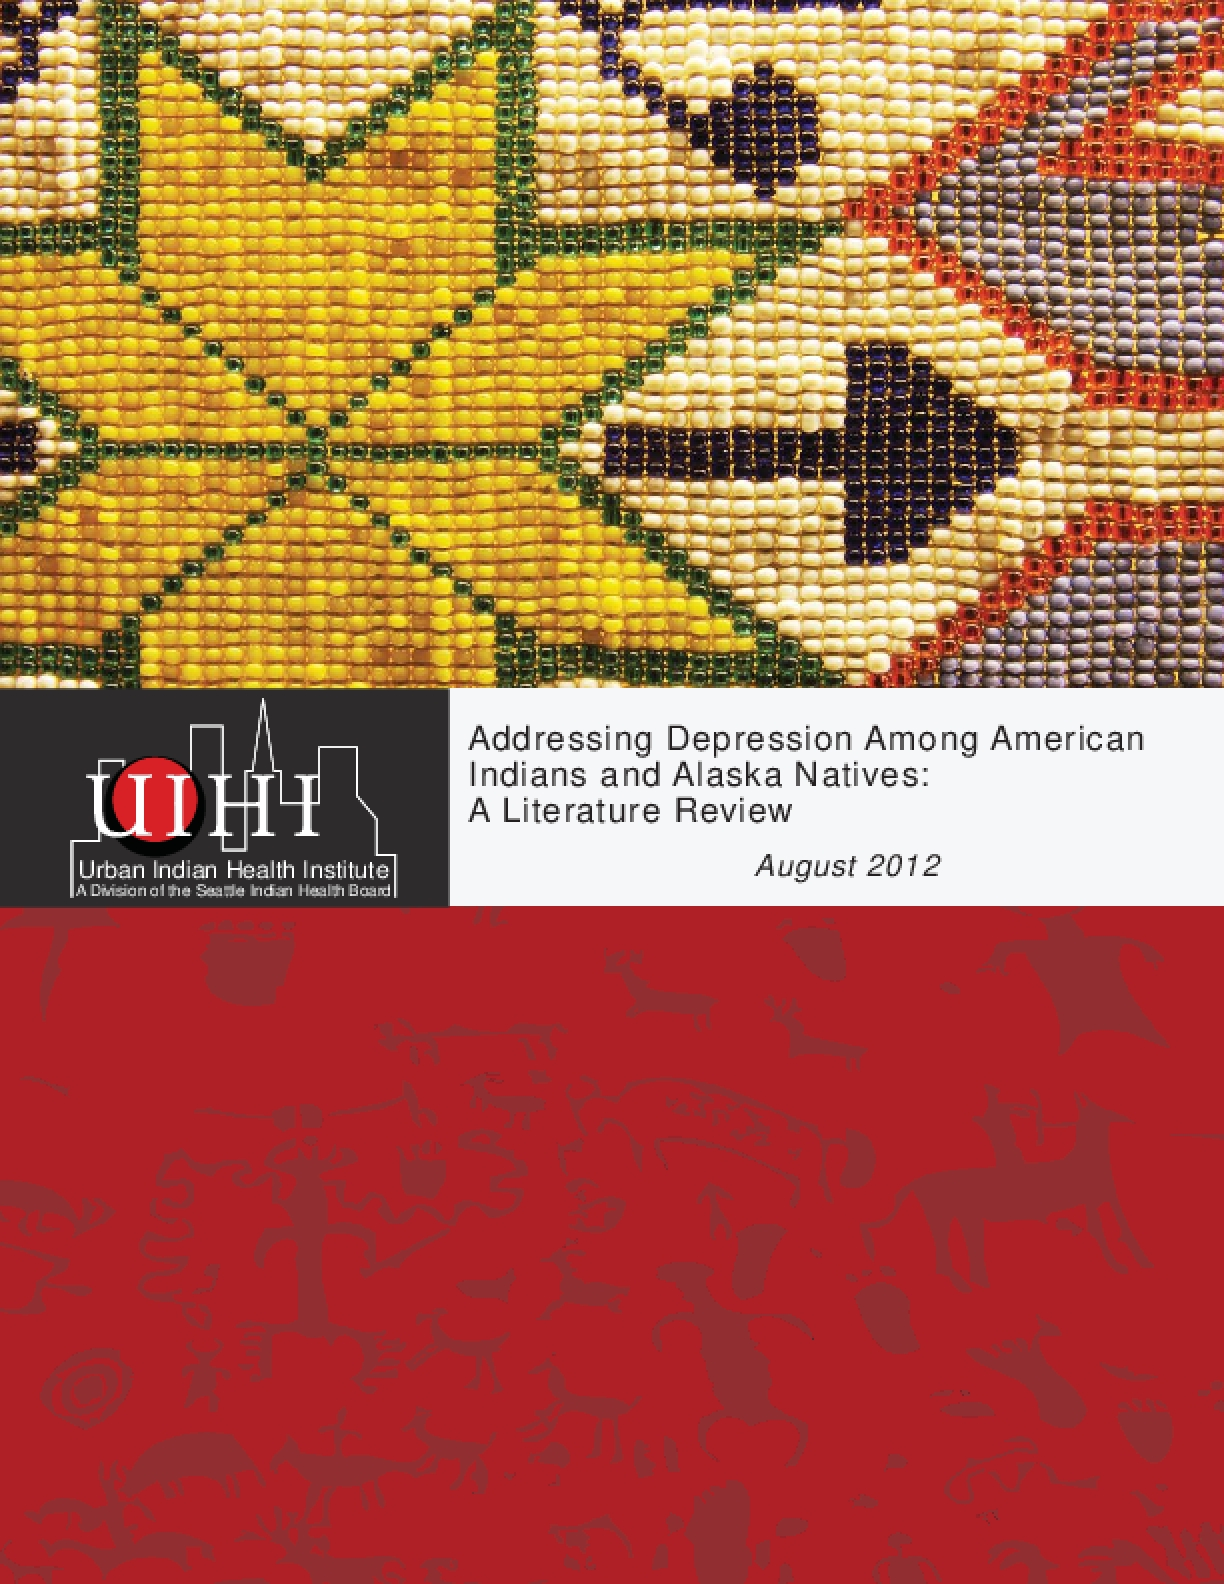 Addressing Depression Among American Indians and Alaska Natives: A Literature Review